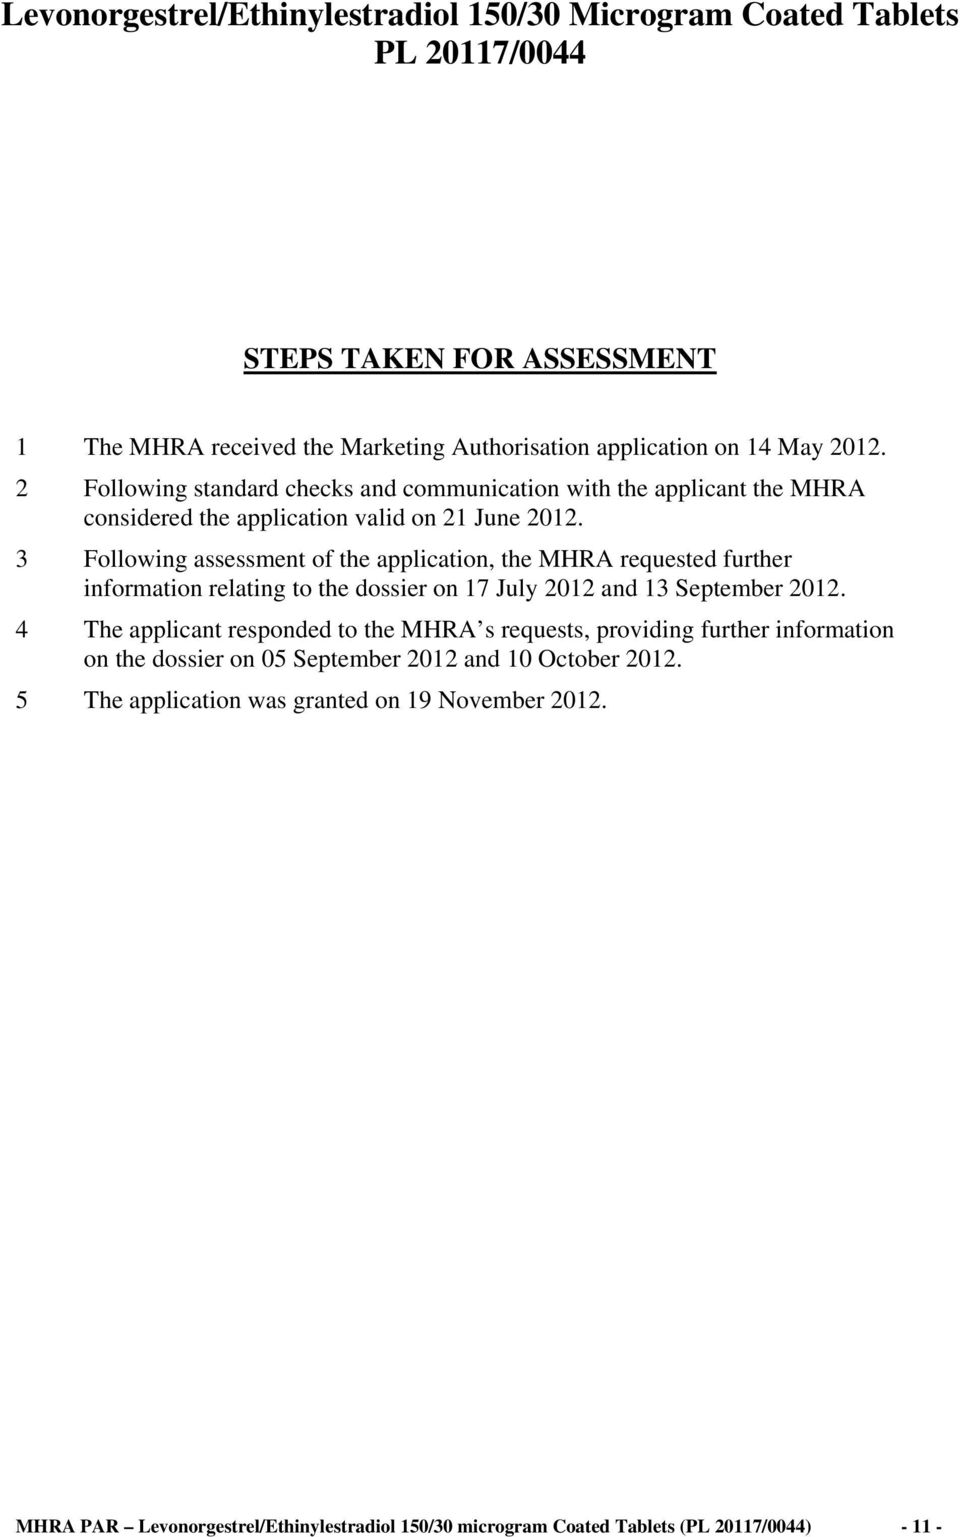 3 Following assessment of the application, the MHRA requested further information relating to the dossier on 17 July 2012 and 13 September 2012.